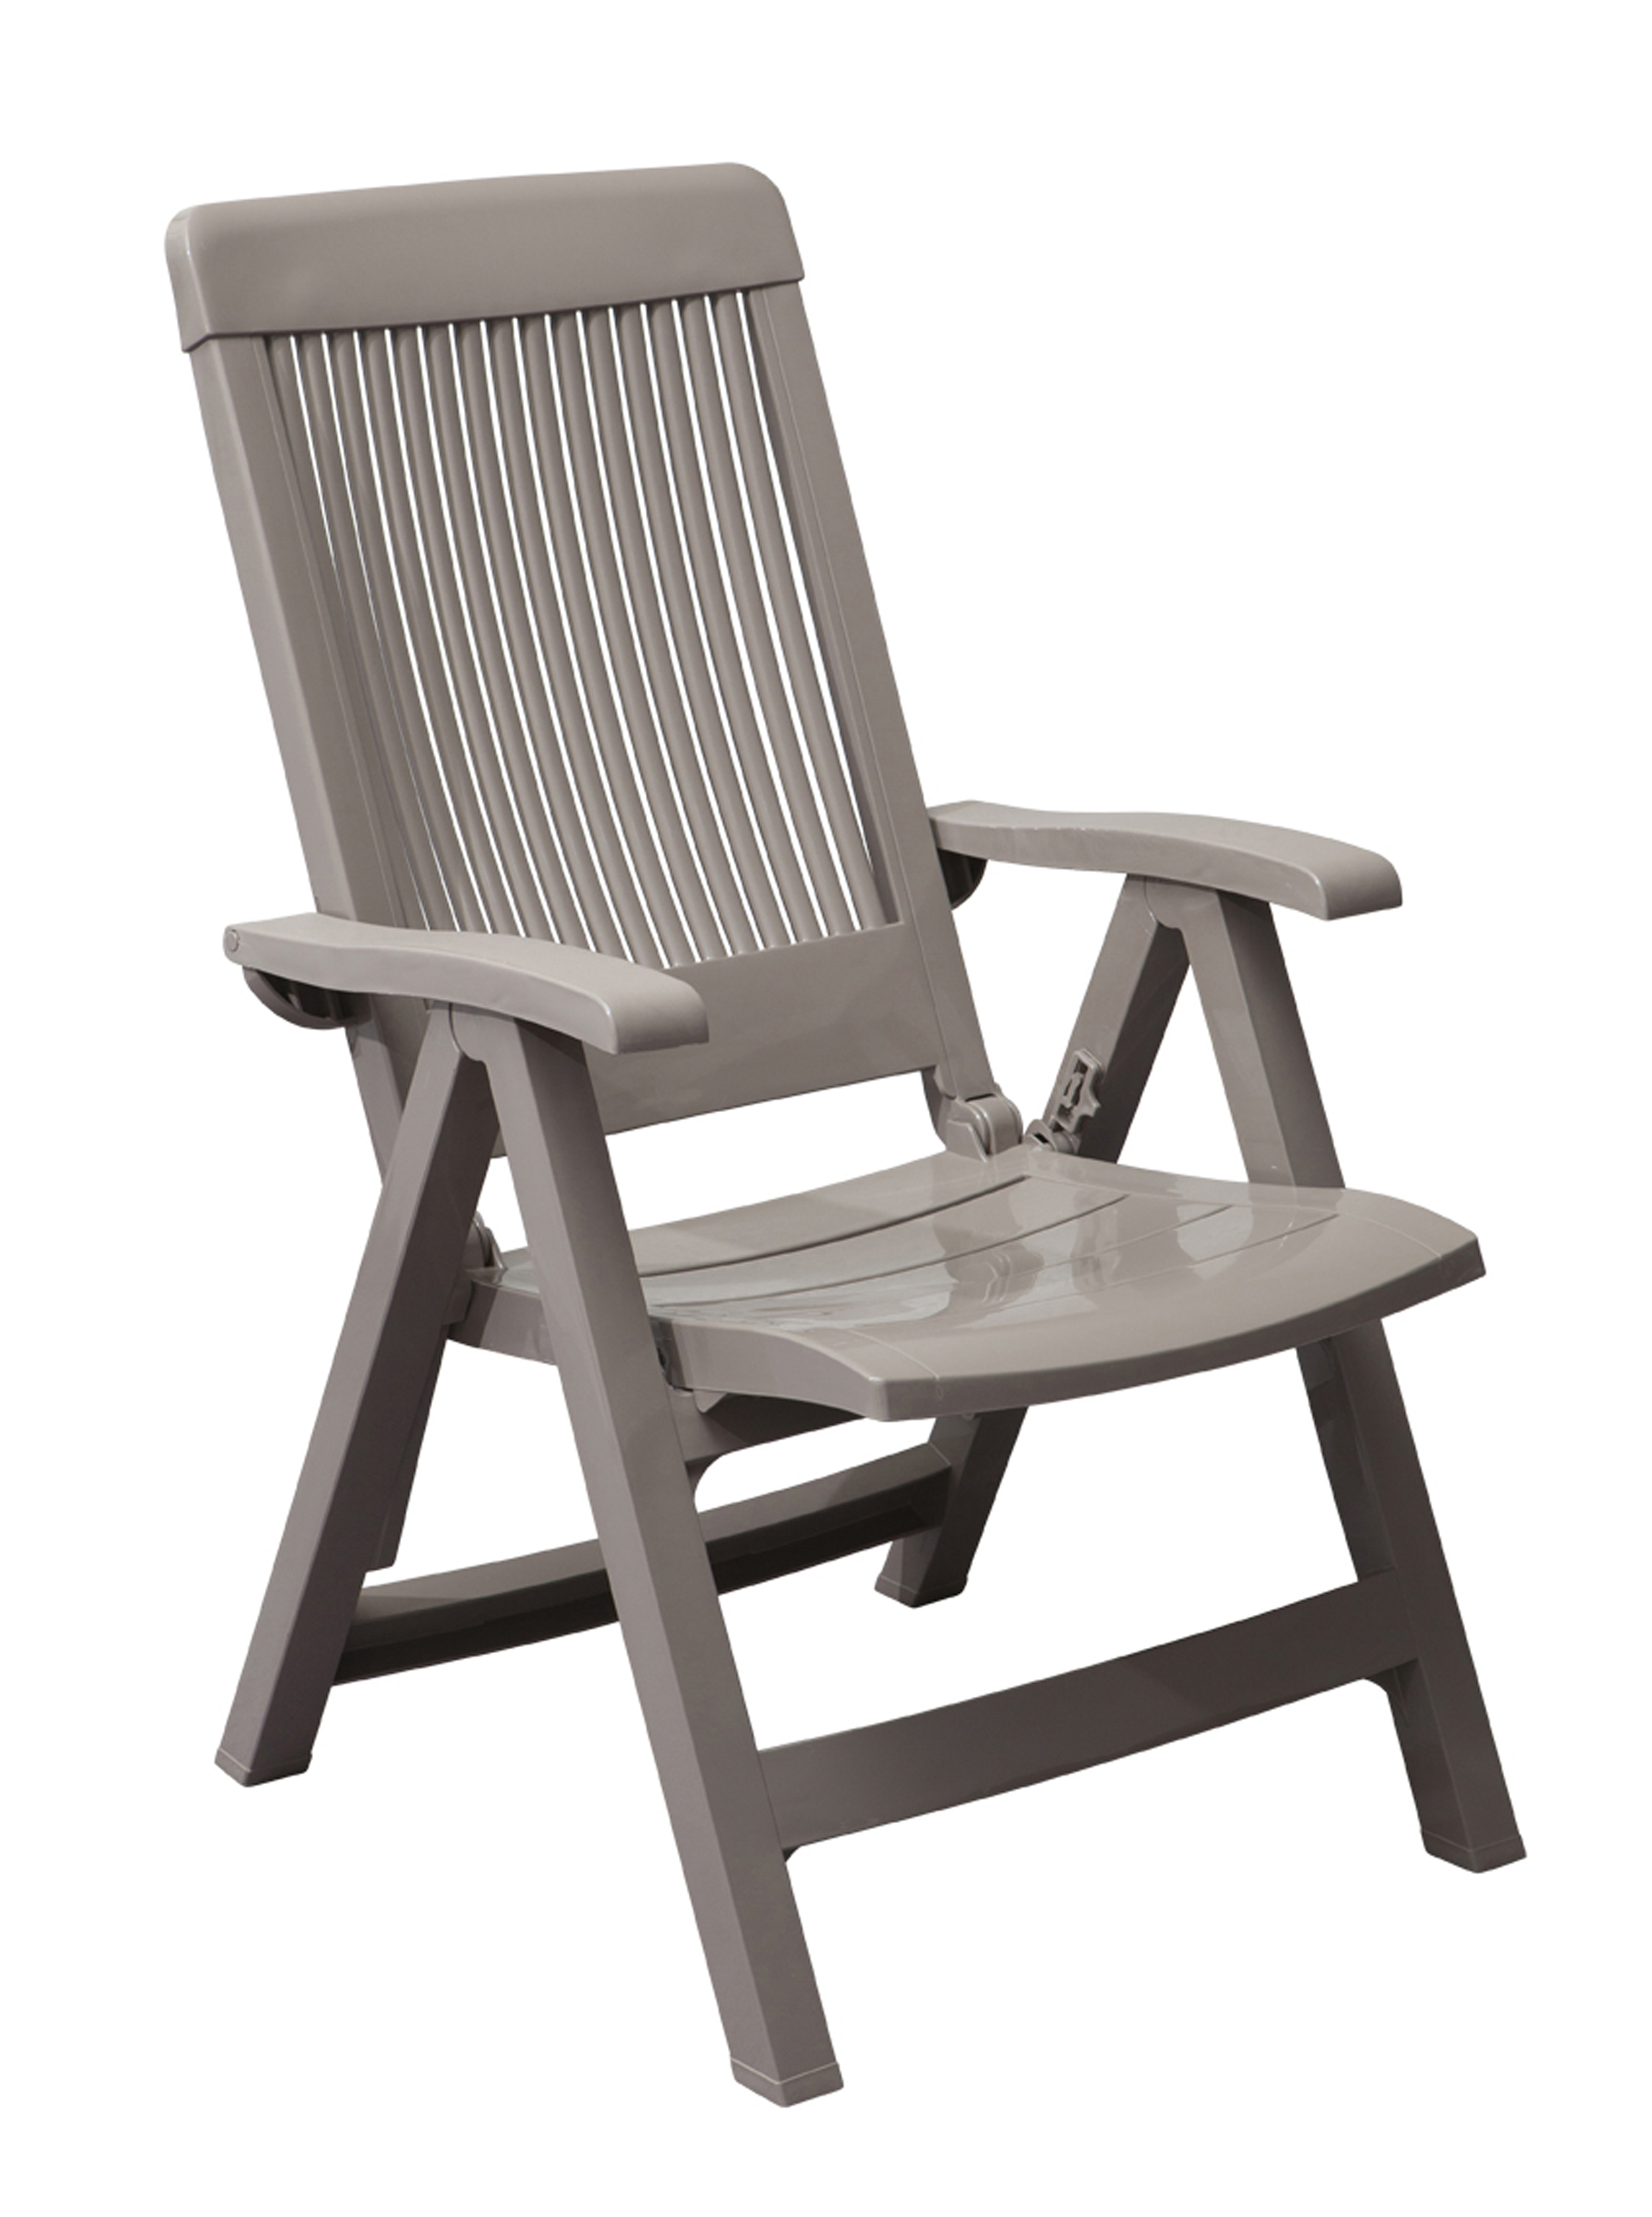 Fauteuil De Jardin Taupe Fidji Garden Easy Chair With Adjustable Backrest | Grosfillex